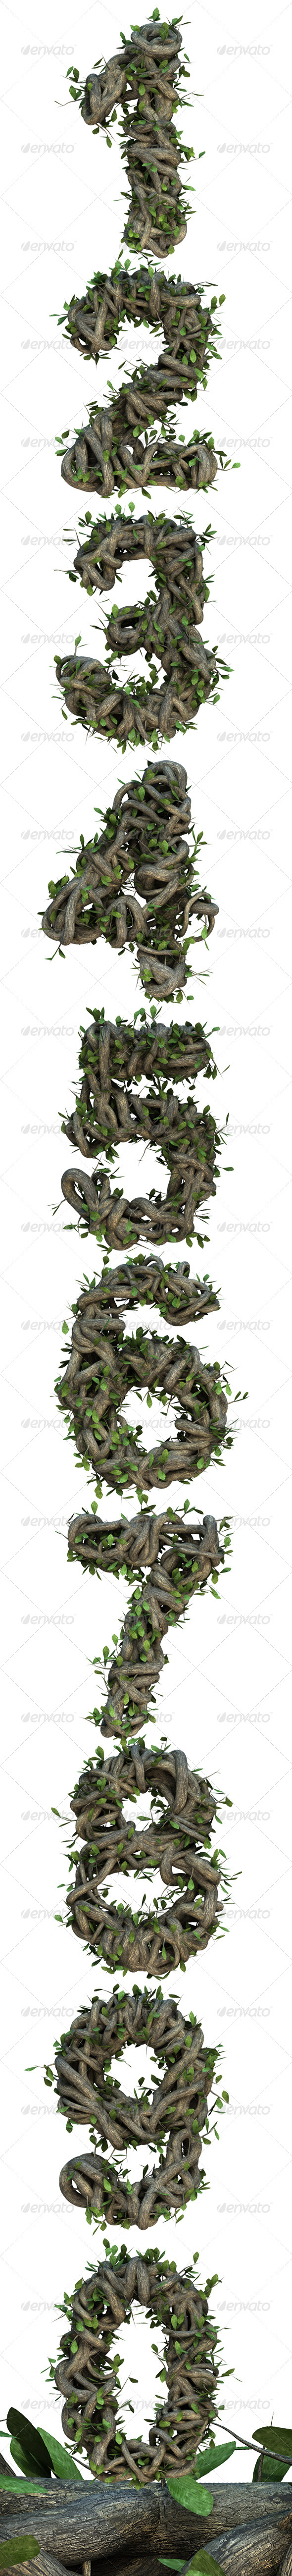 Ivy Numbers - Text 3D Renders